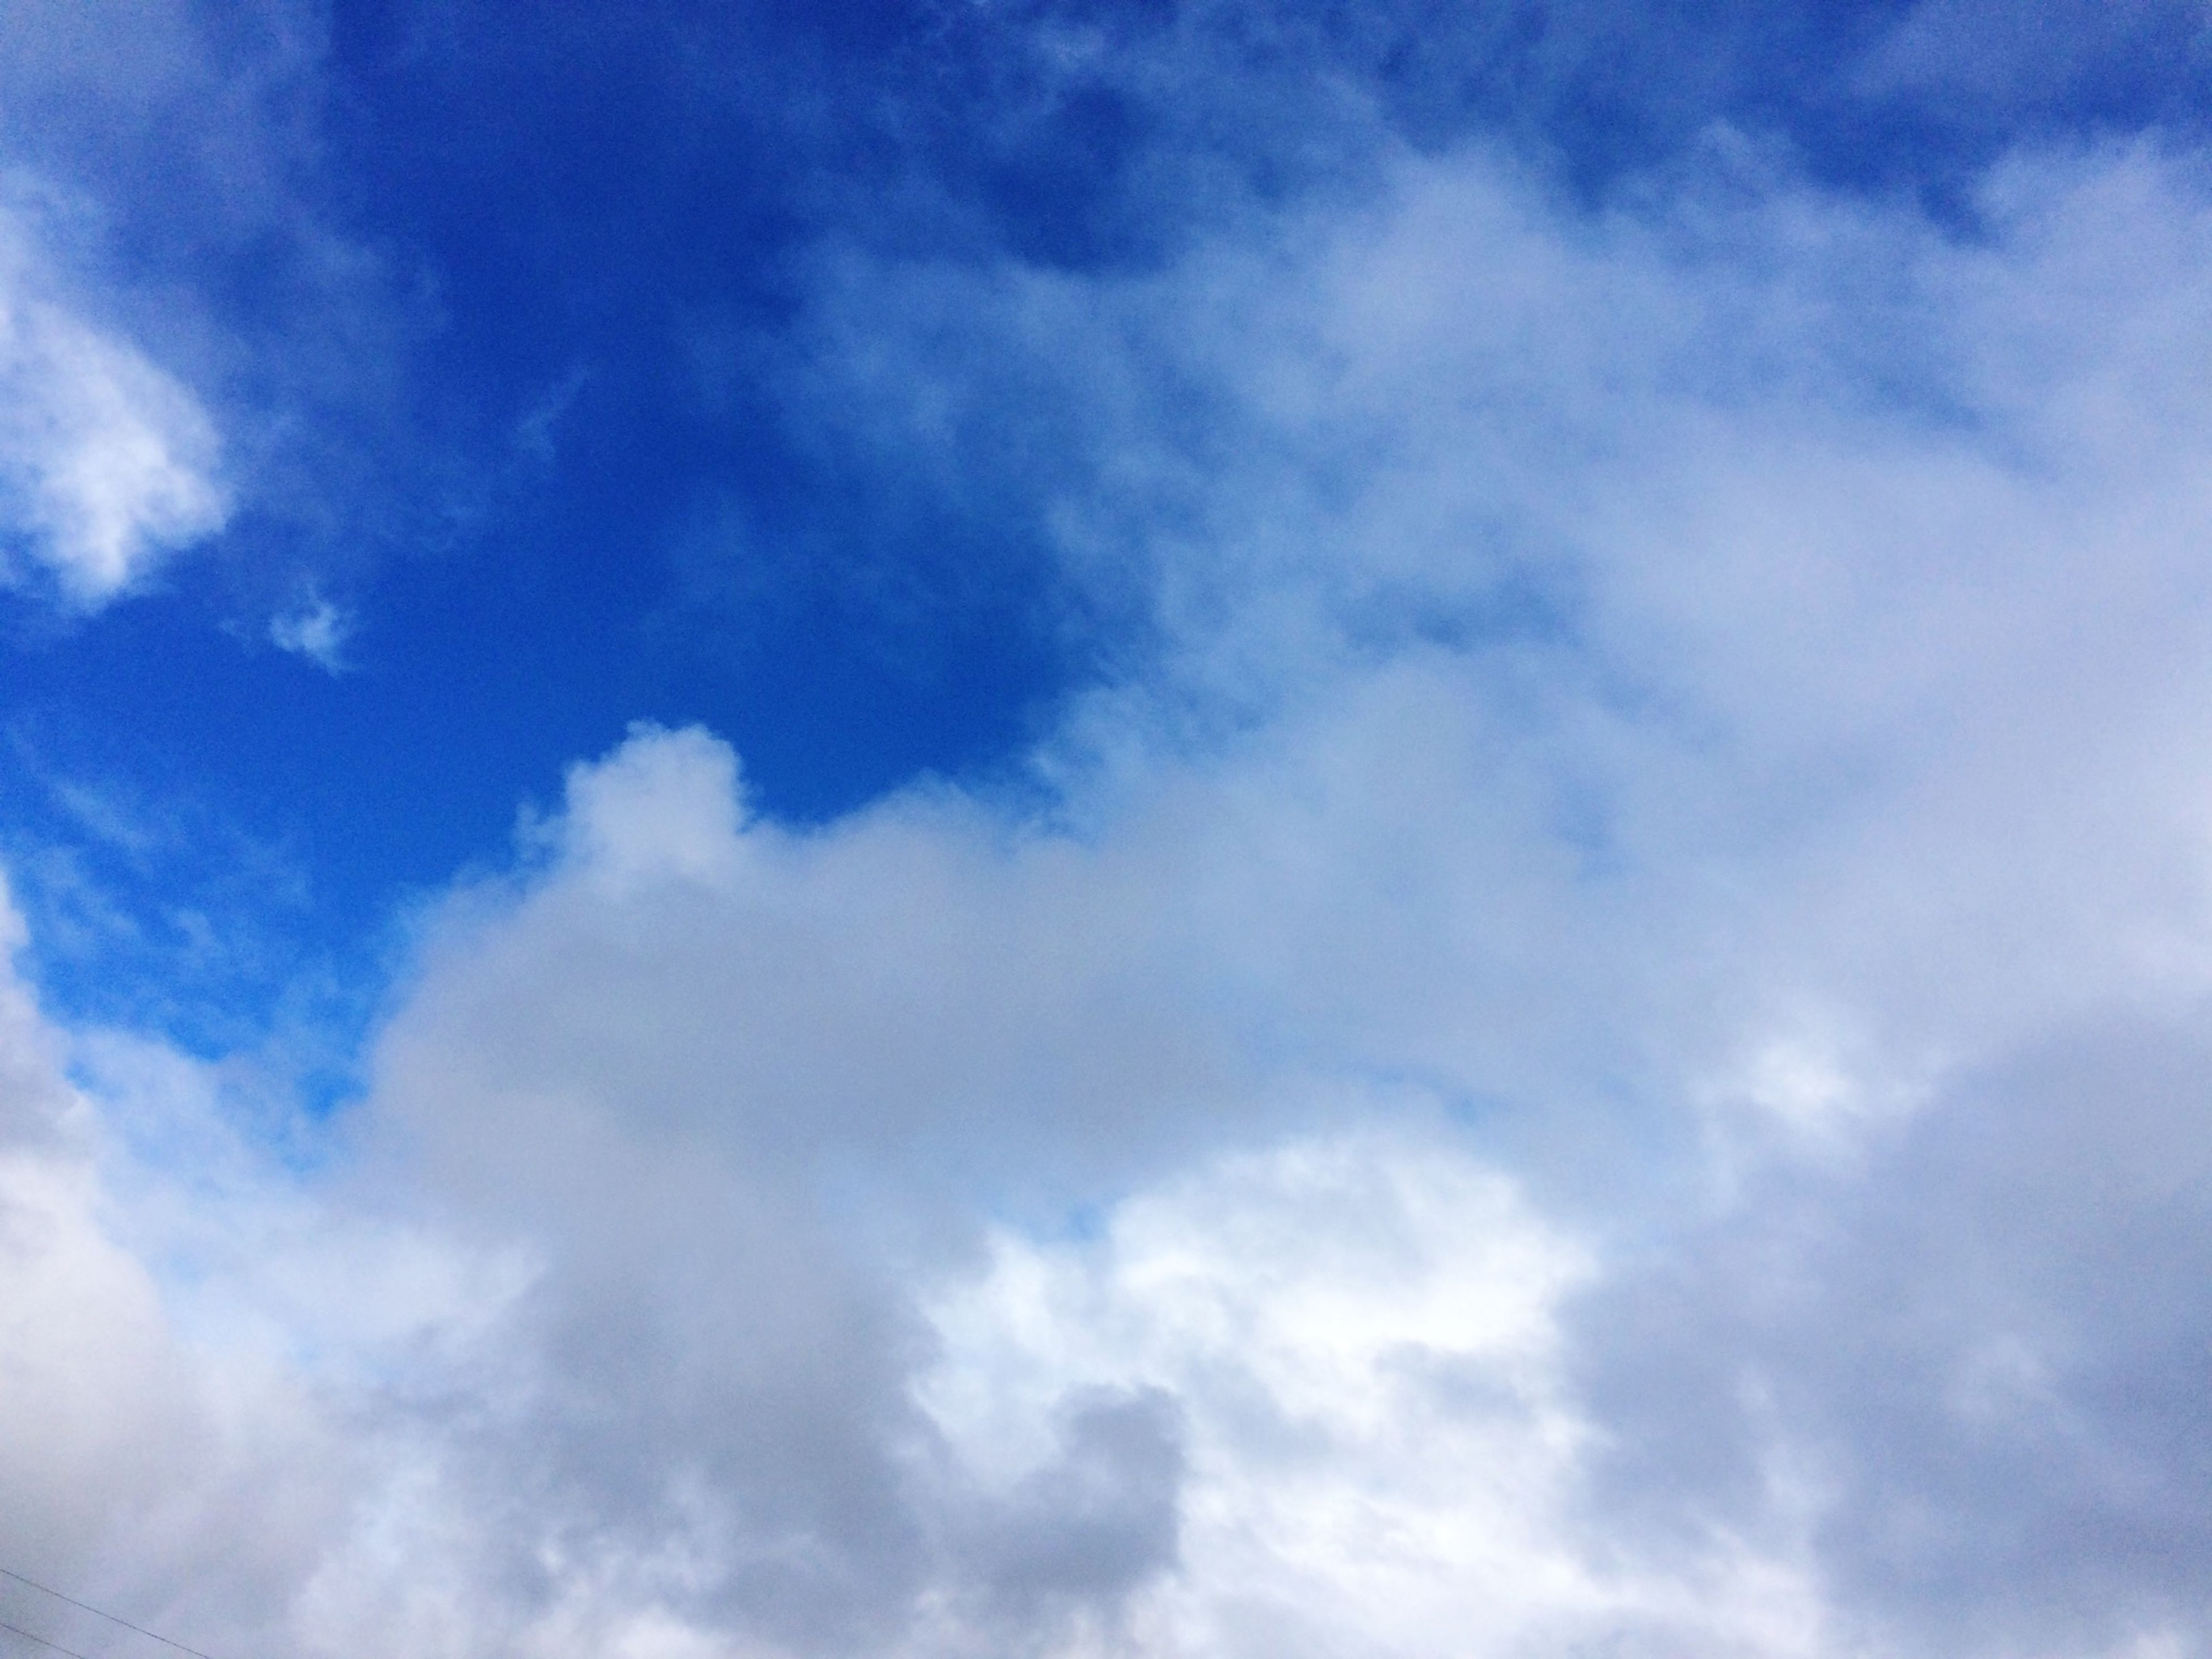 sky, low angle view, cloud - sky, sky only, blue, beauty in nature, tranquility, scenics, nature, cloudy, cloudscape, backgrounds, tranquil scene, cloud, white color, full frame, idyllic, day, outdoors, no people